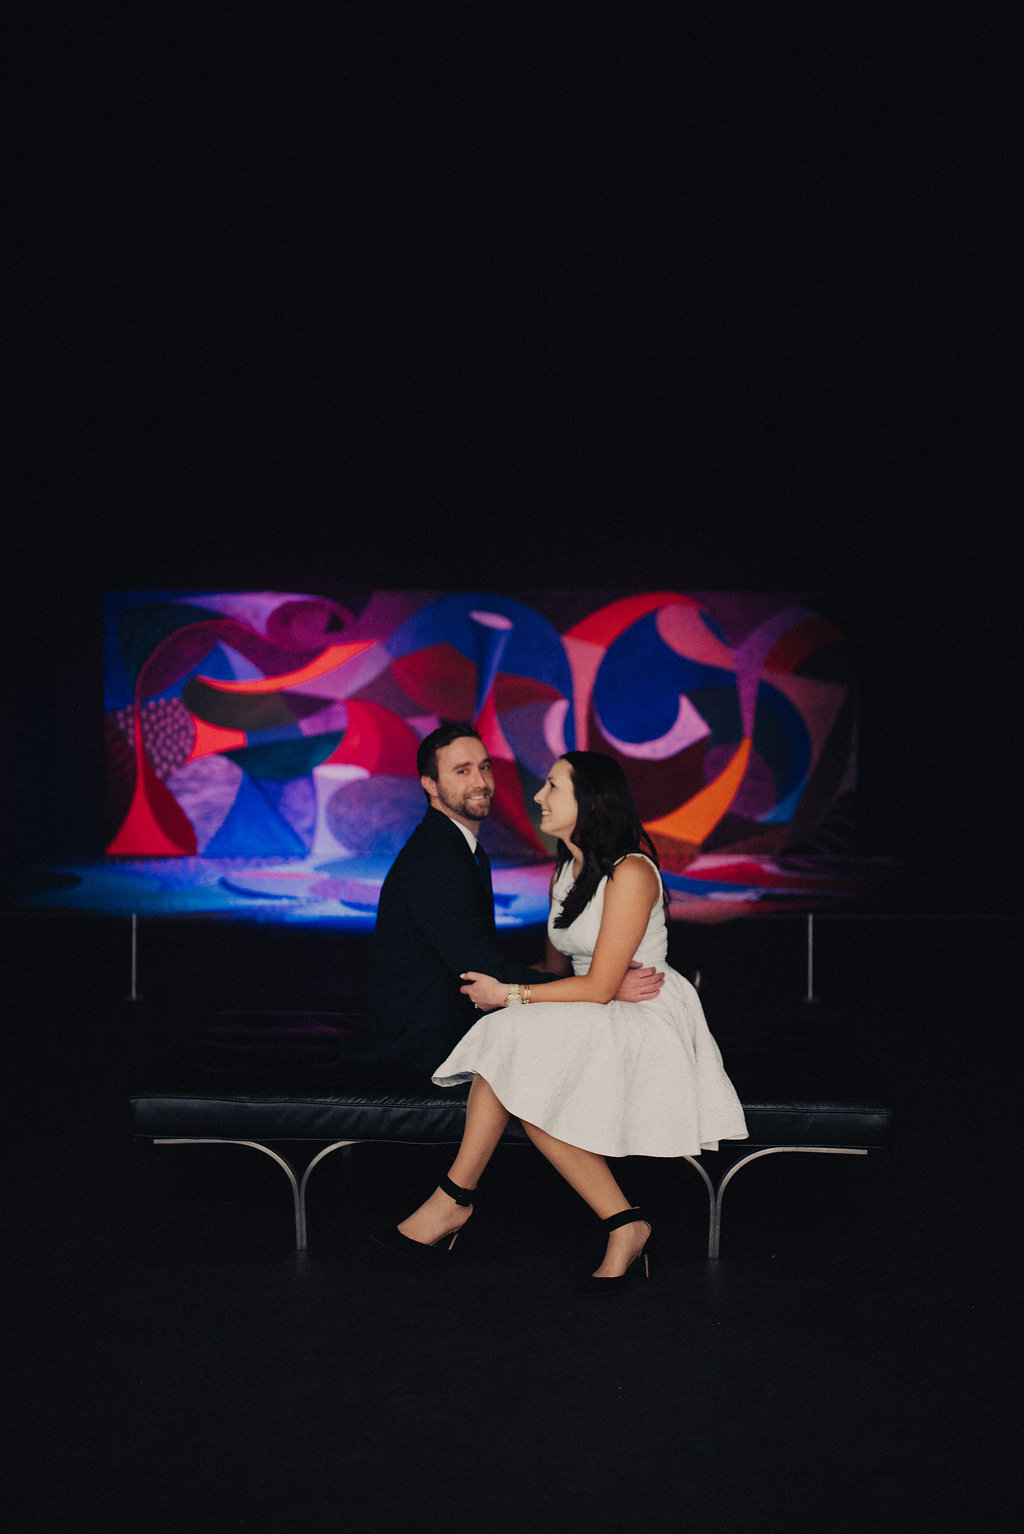 colorful engagement portrait in an art exhibit at the american art museum